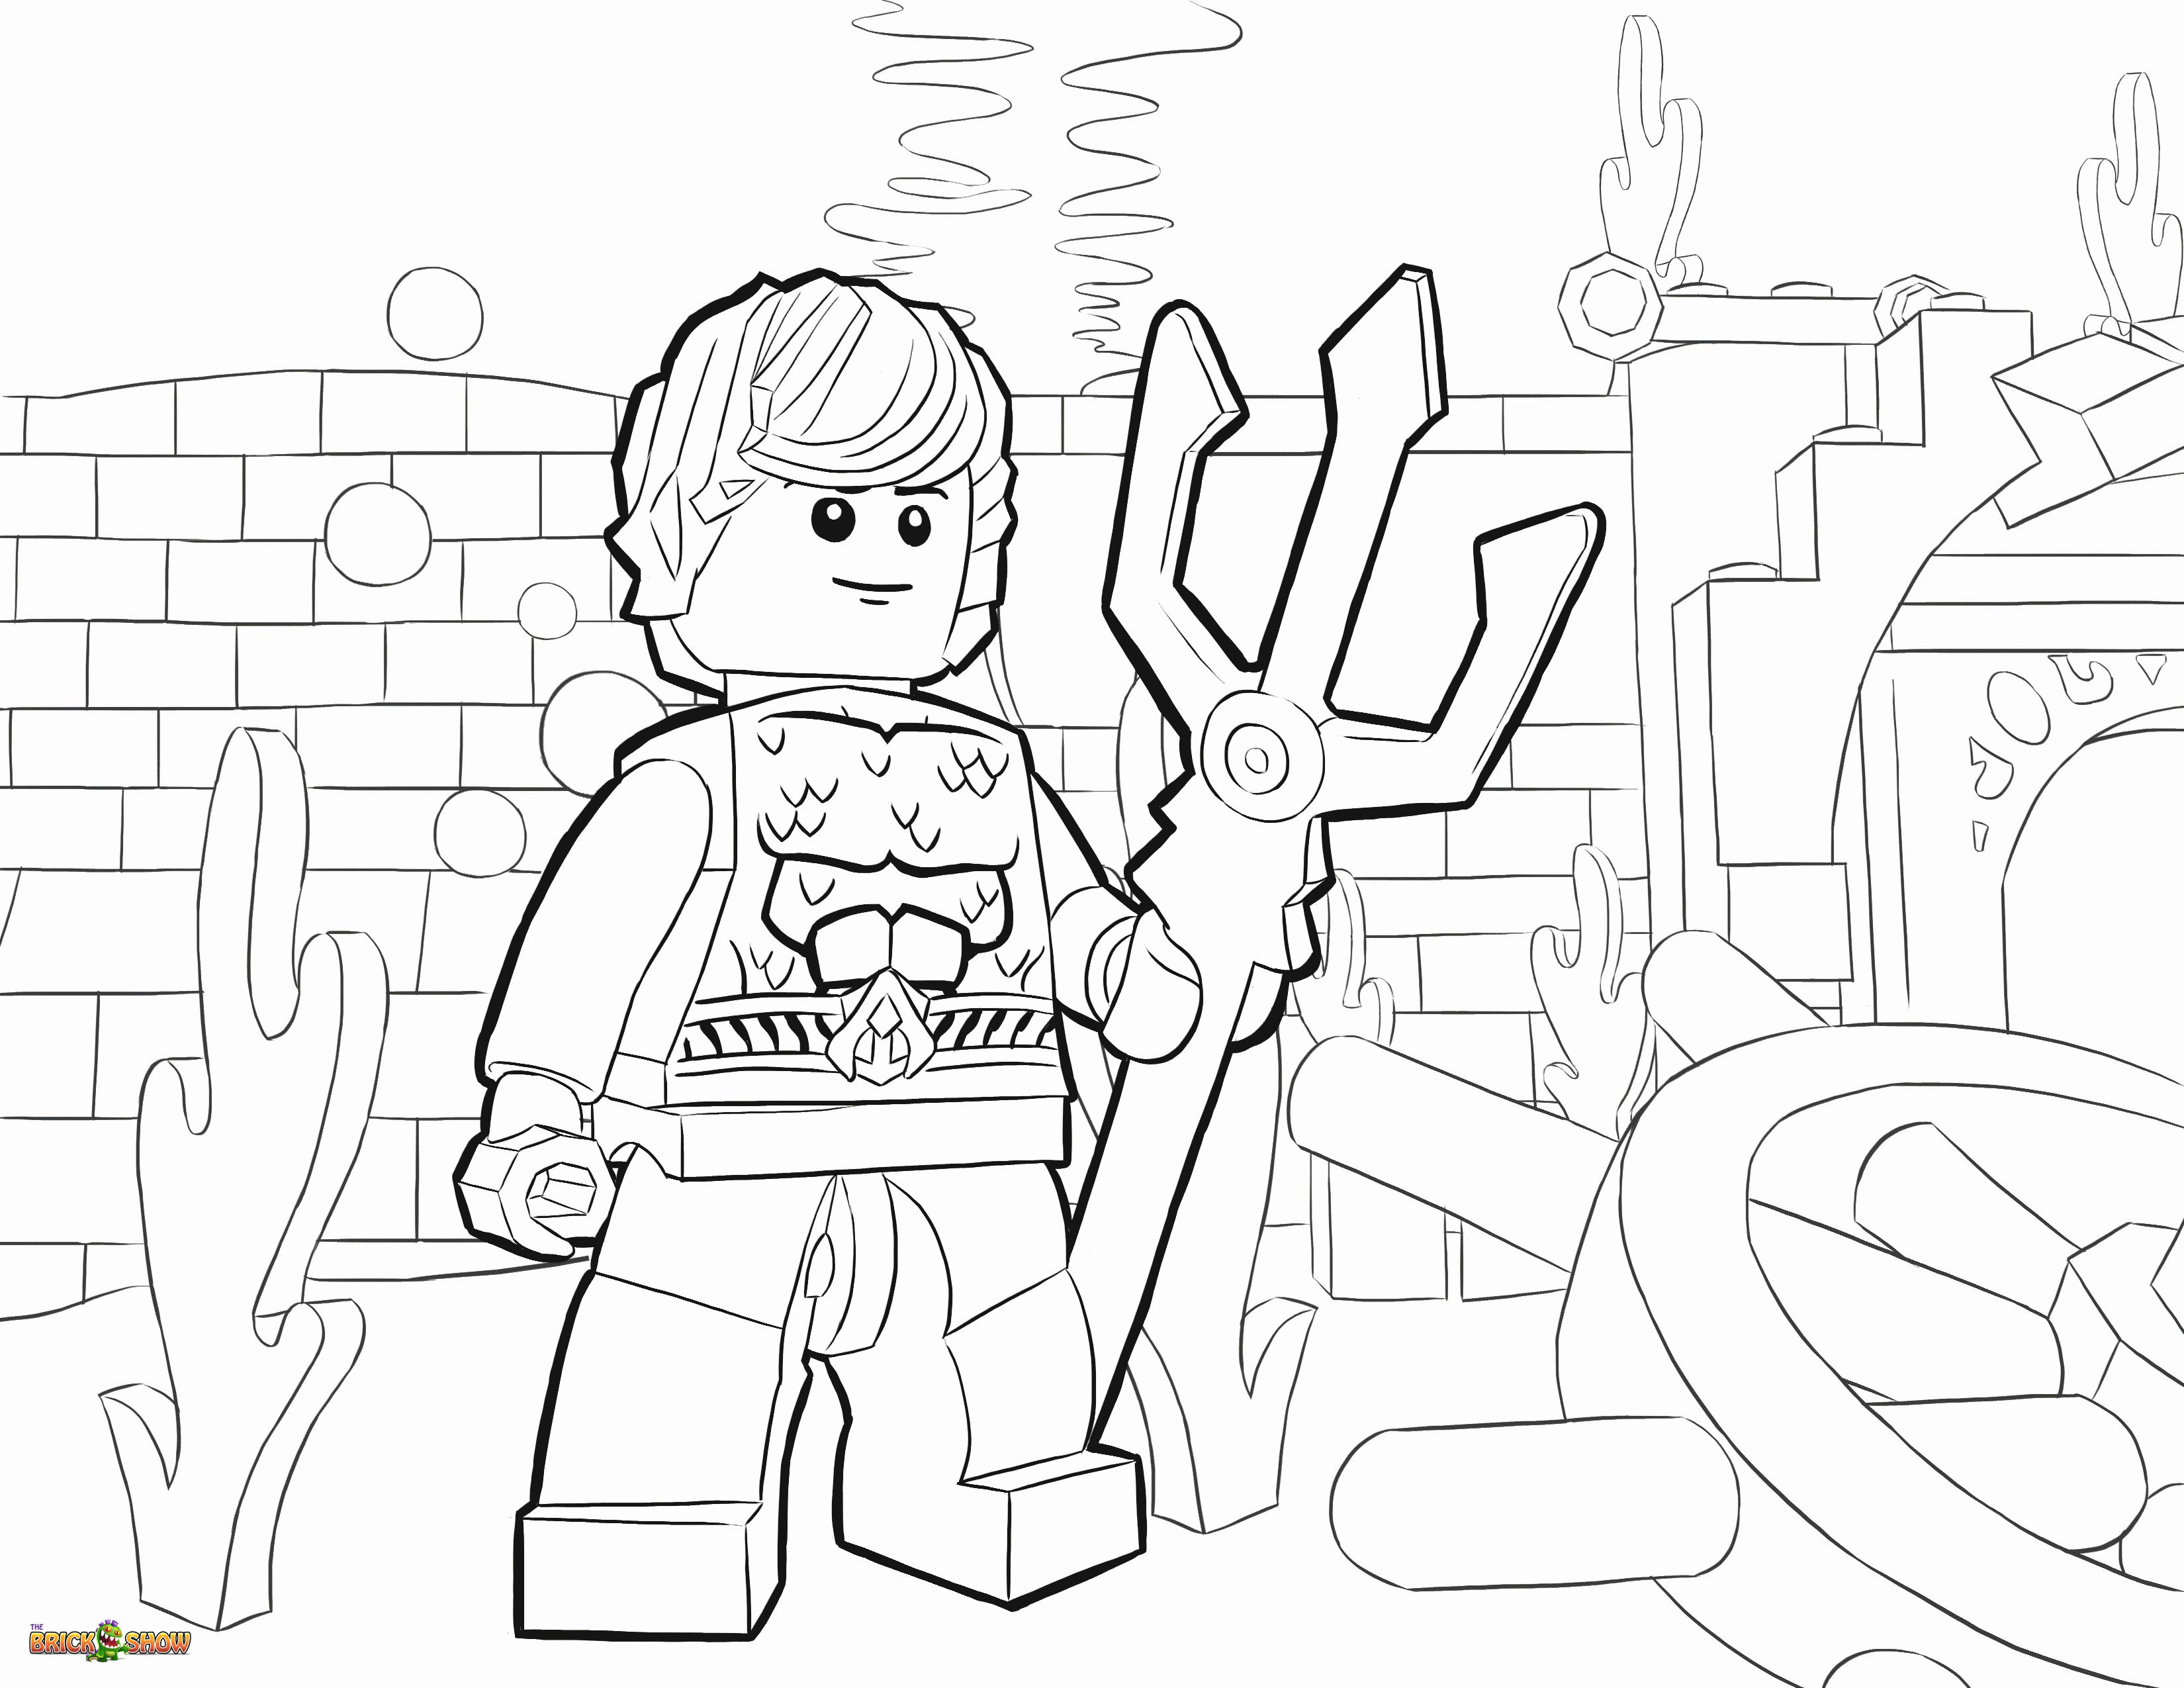 Justice League Coloring Page Awesome Lego Justice League Coloring Pages Coloring Home Superhero Coloring Pages Superhero Coloring Lego Coloring Pages